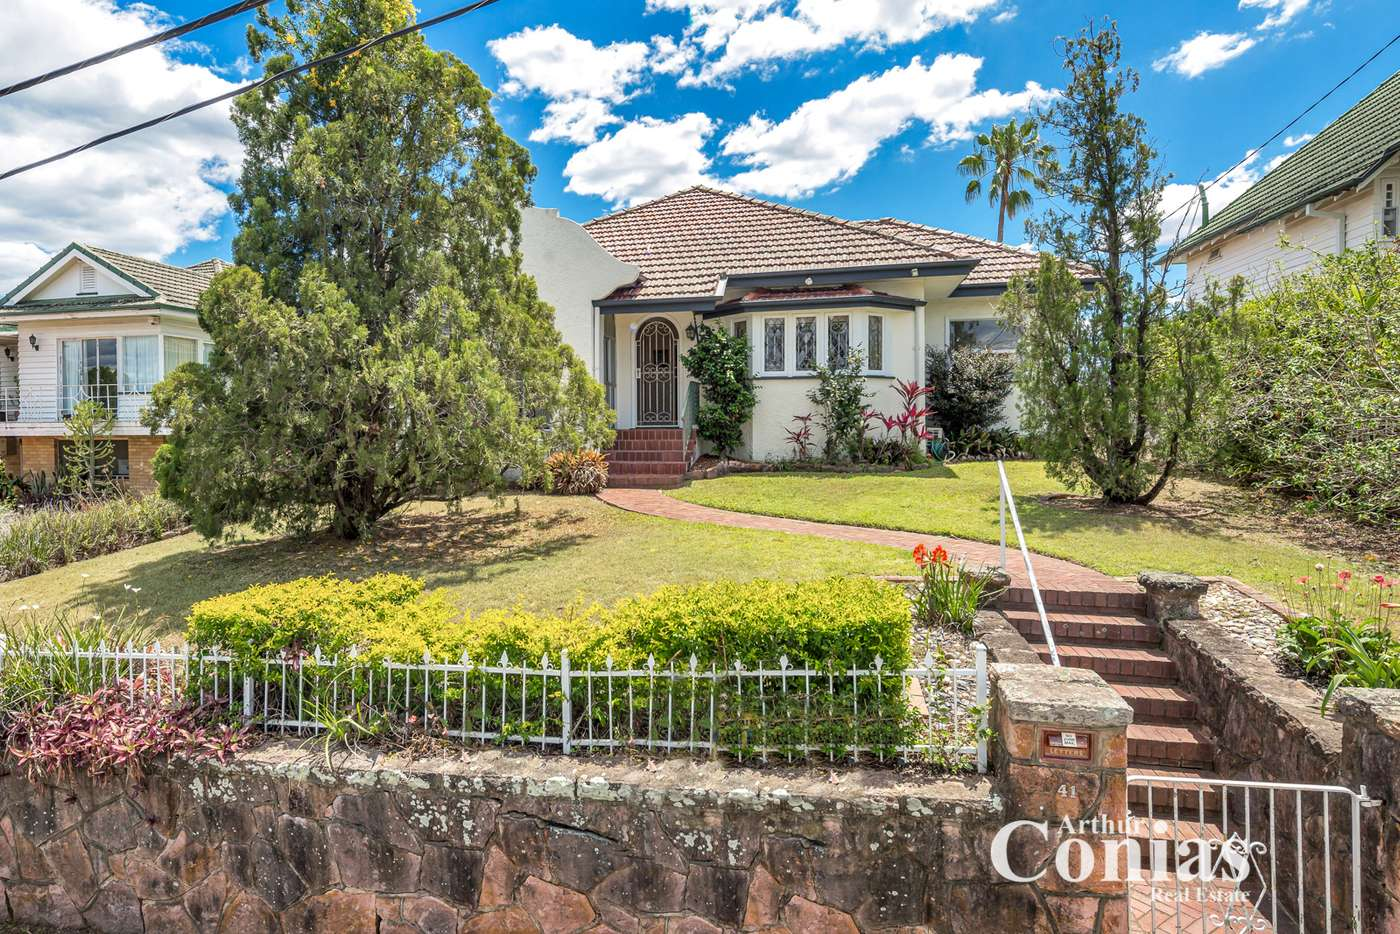 Main view of Homely house listing, 41 Aston St, Toowong QLD 4066